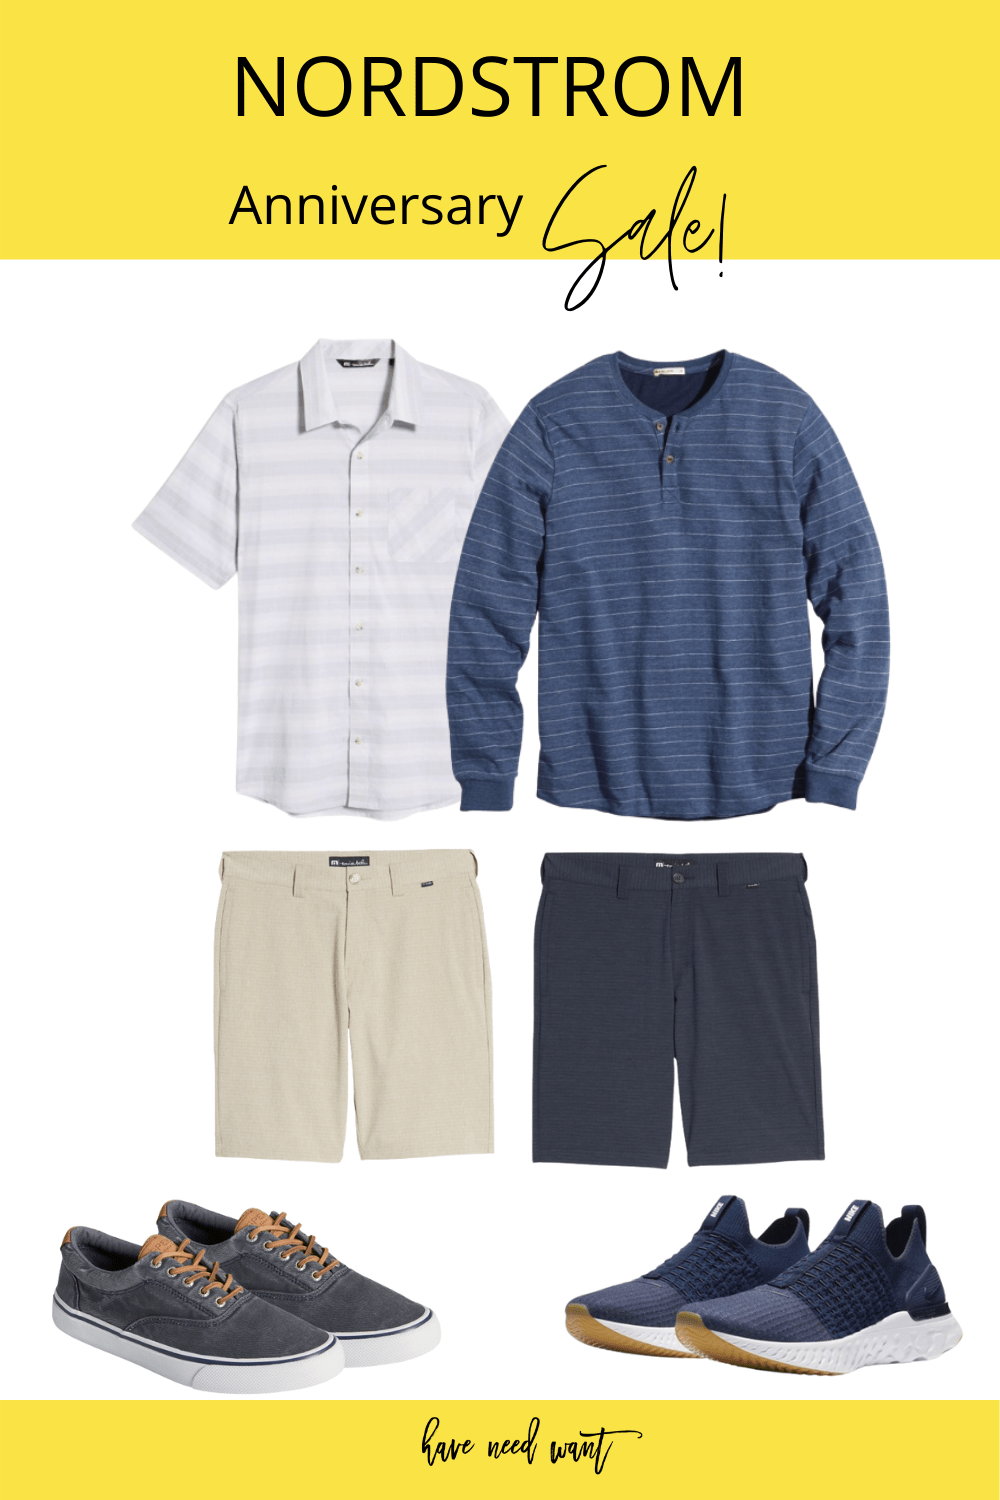 Men's casual outfit ideas pulled from the Nordstrom Anniversary Sale